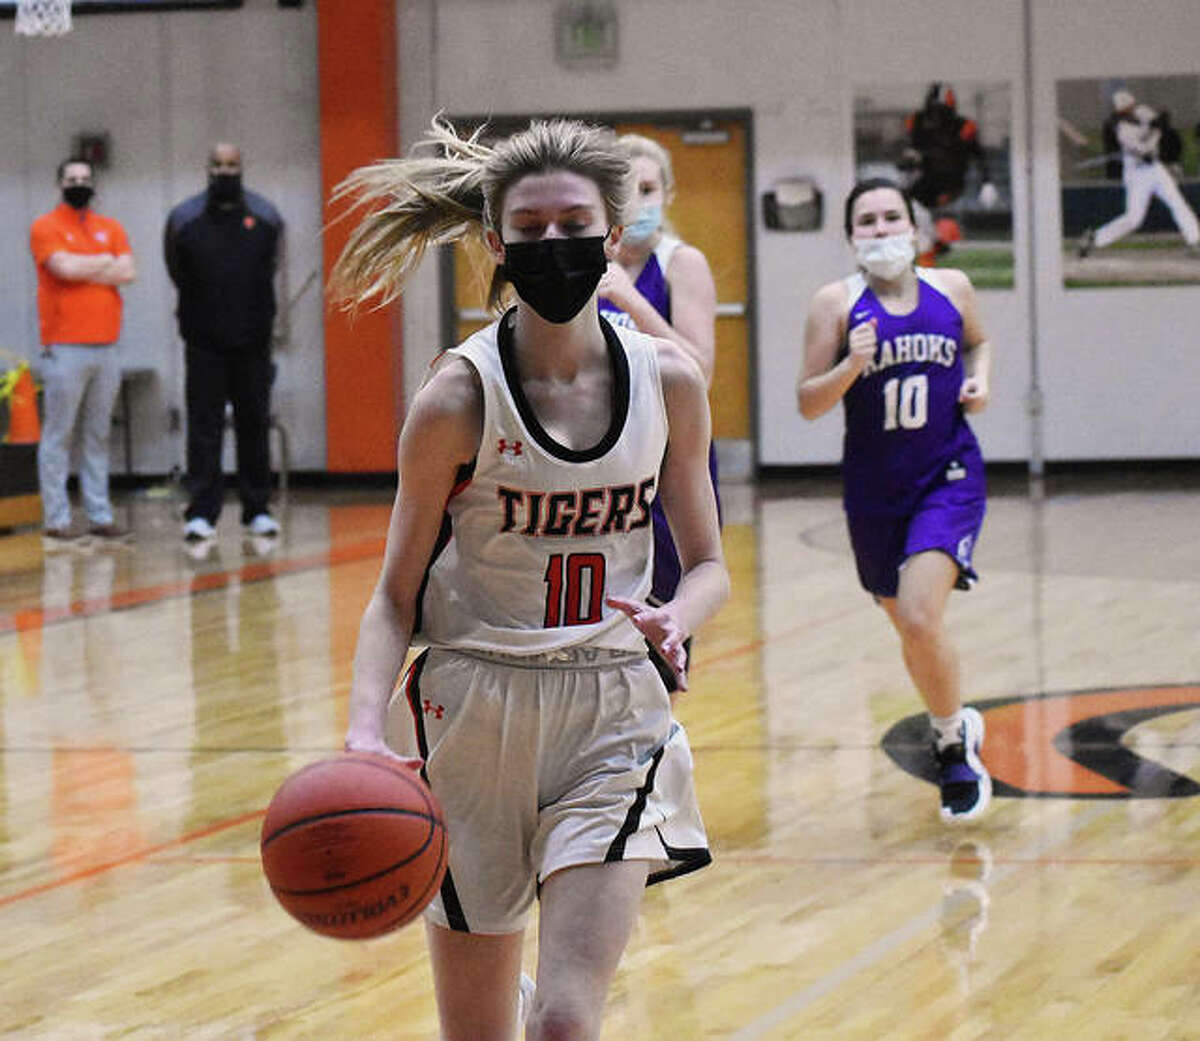 Edwardsville's Ashlyn Hauk drives to the basket for a layup after a Collinsville turnover in the second half of Thursday's game.